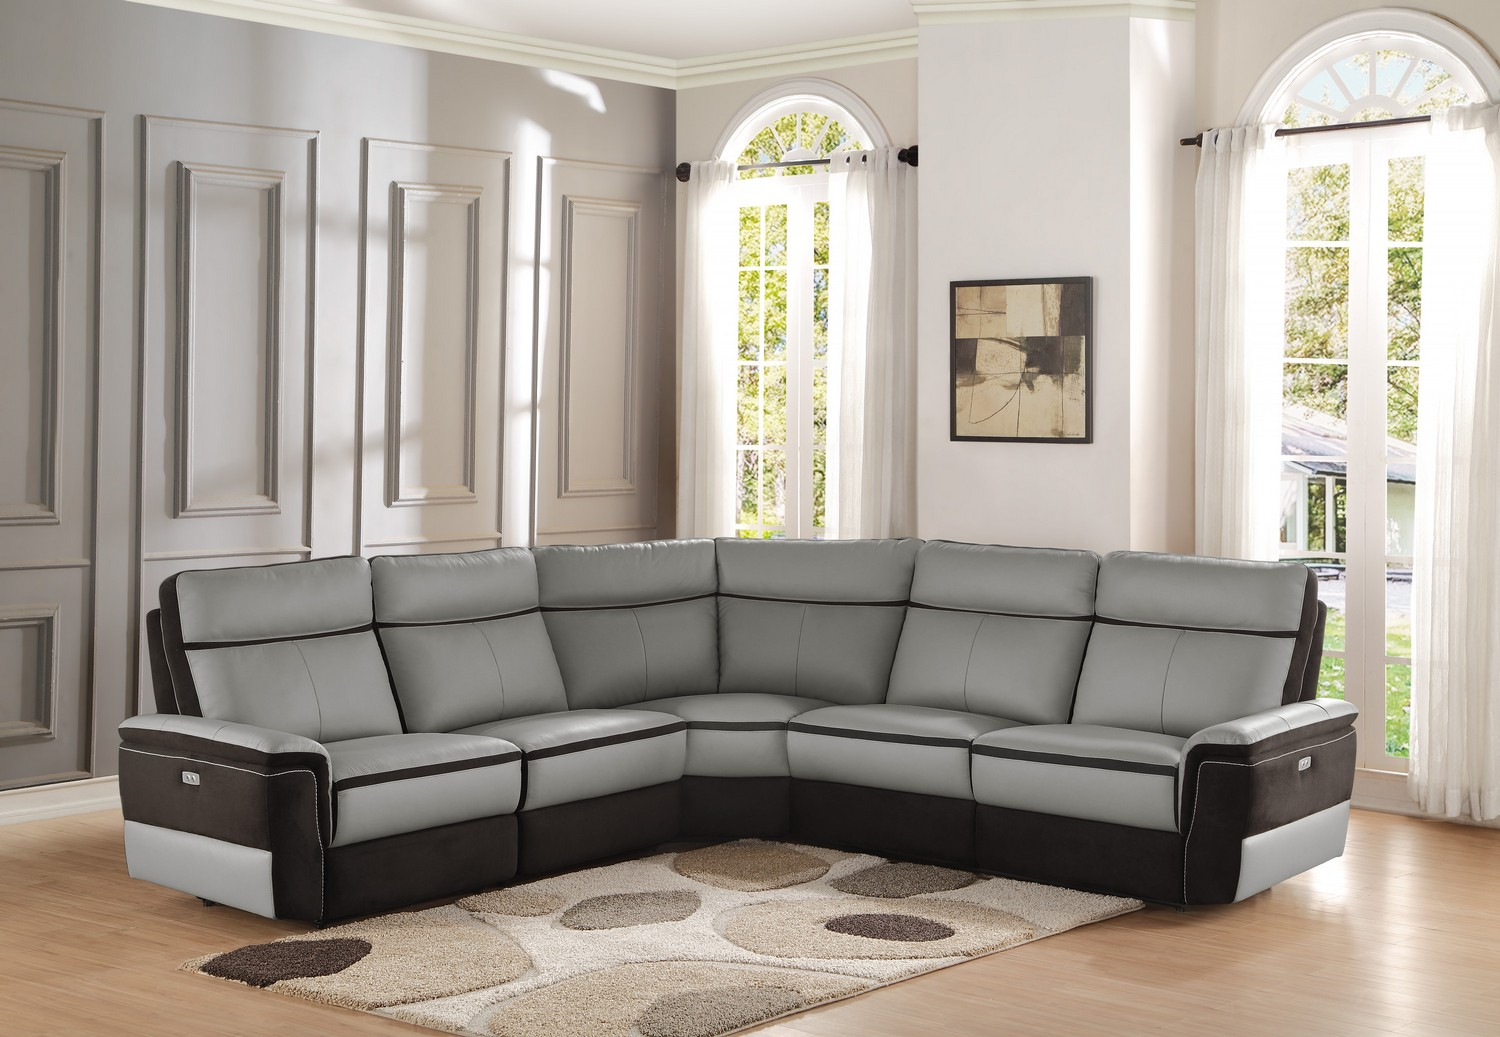 Homelegance Laertes Reclining Sectional Sofa Set Top Grain Leather Fabric Taupe Grey